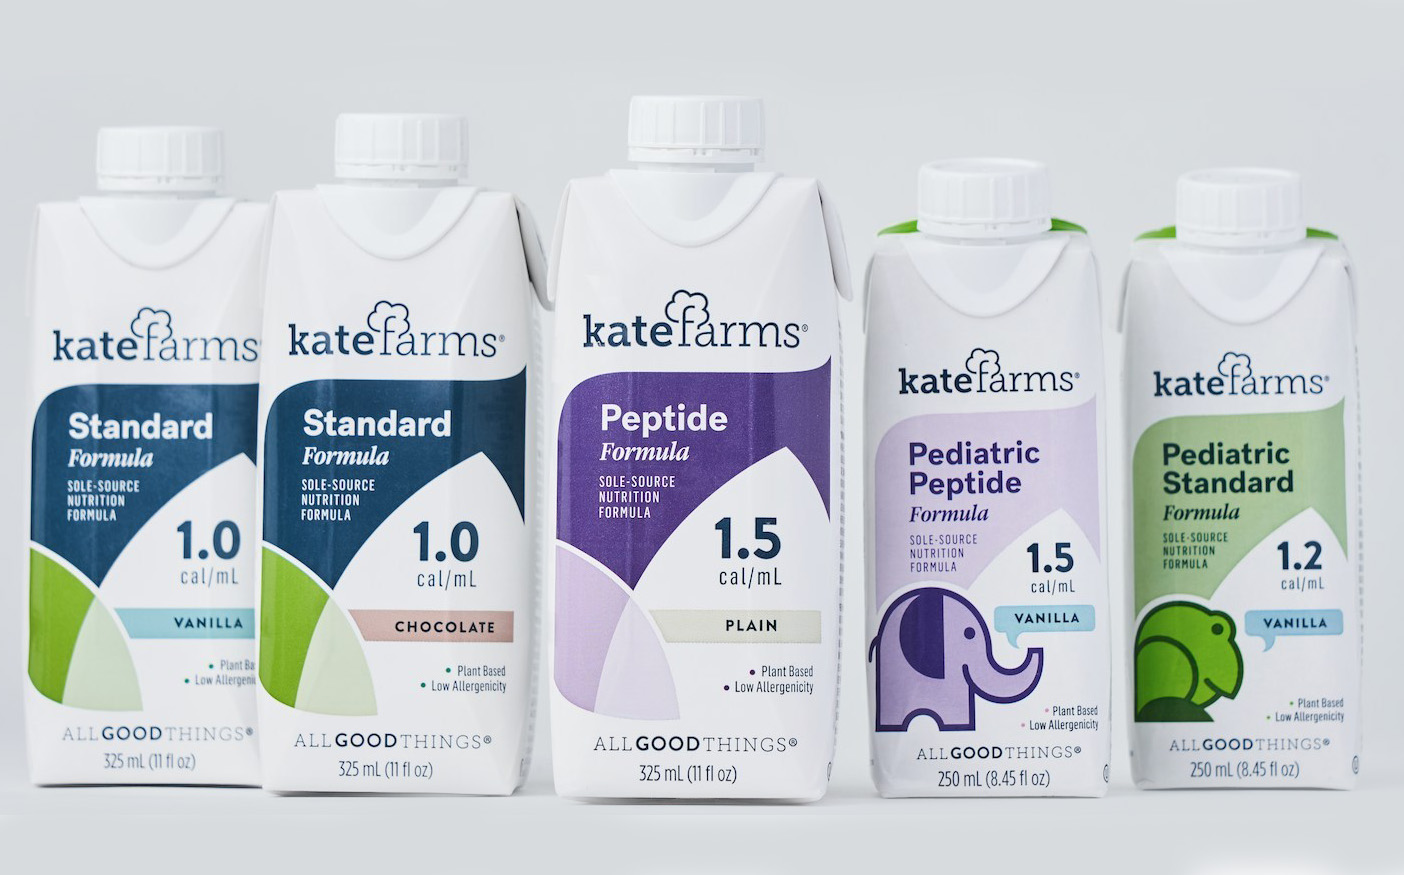 Plant-based formula maker Kate Farms secures $23m in funding